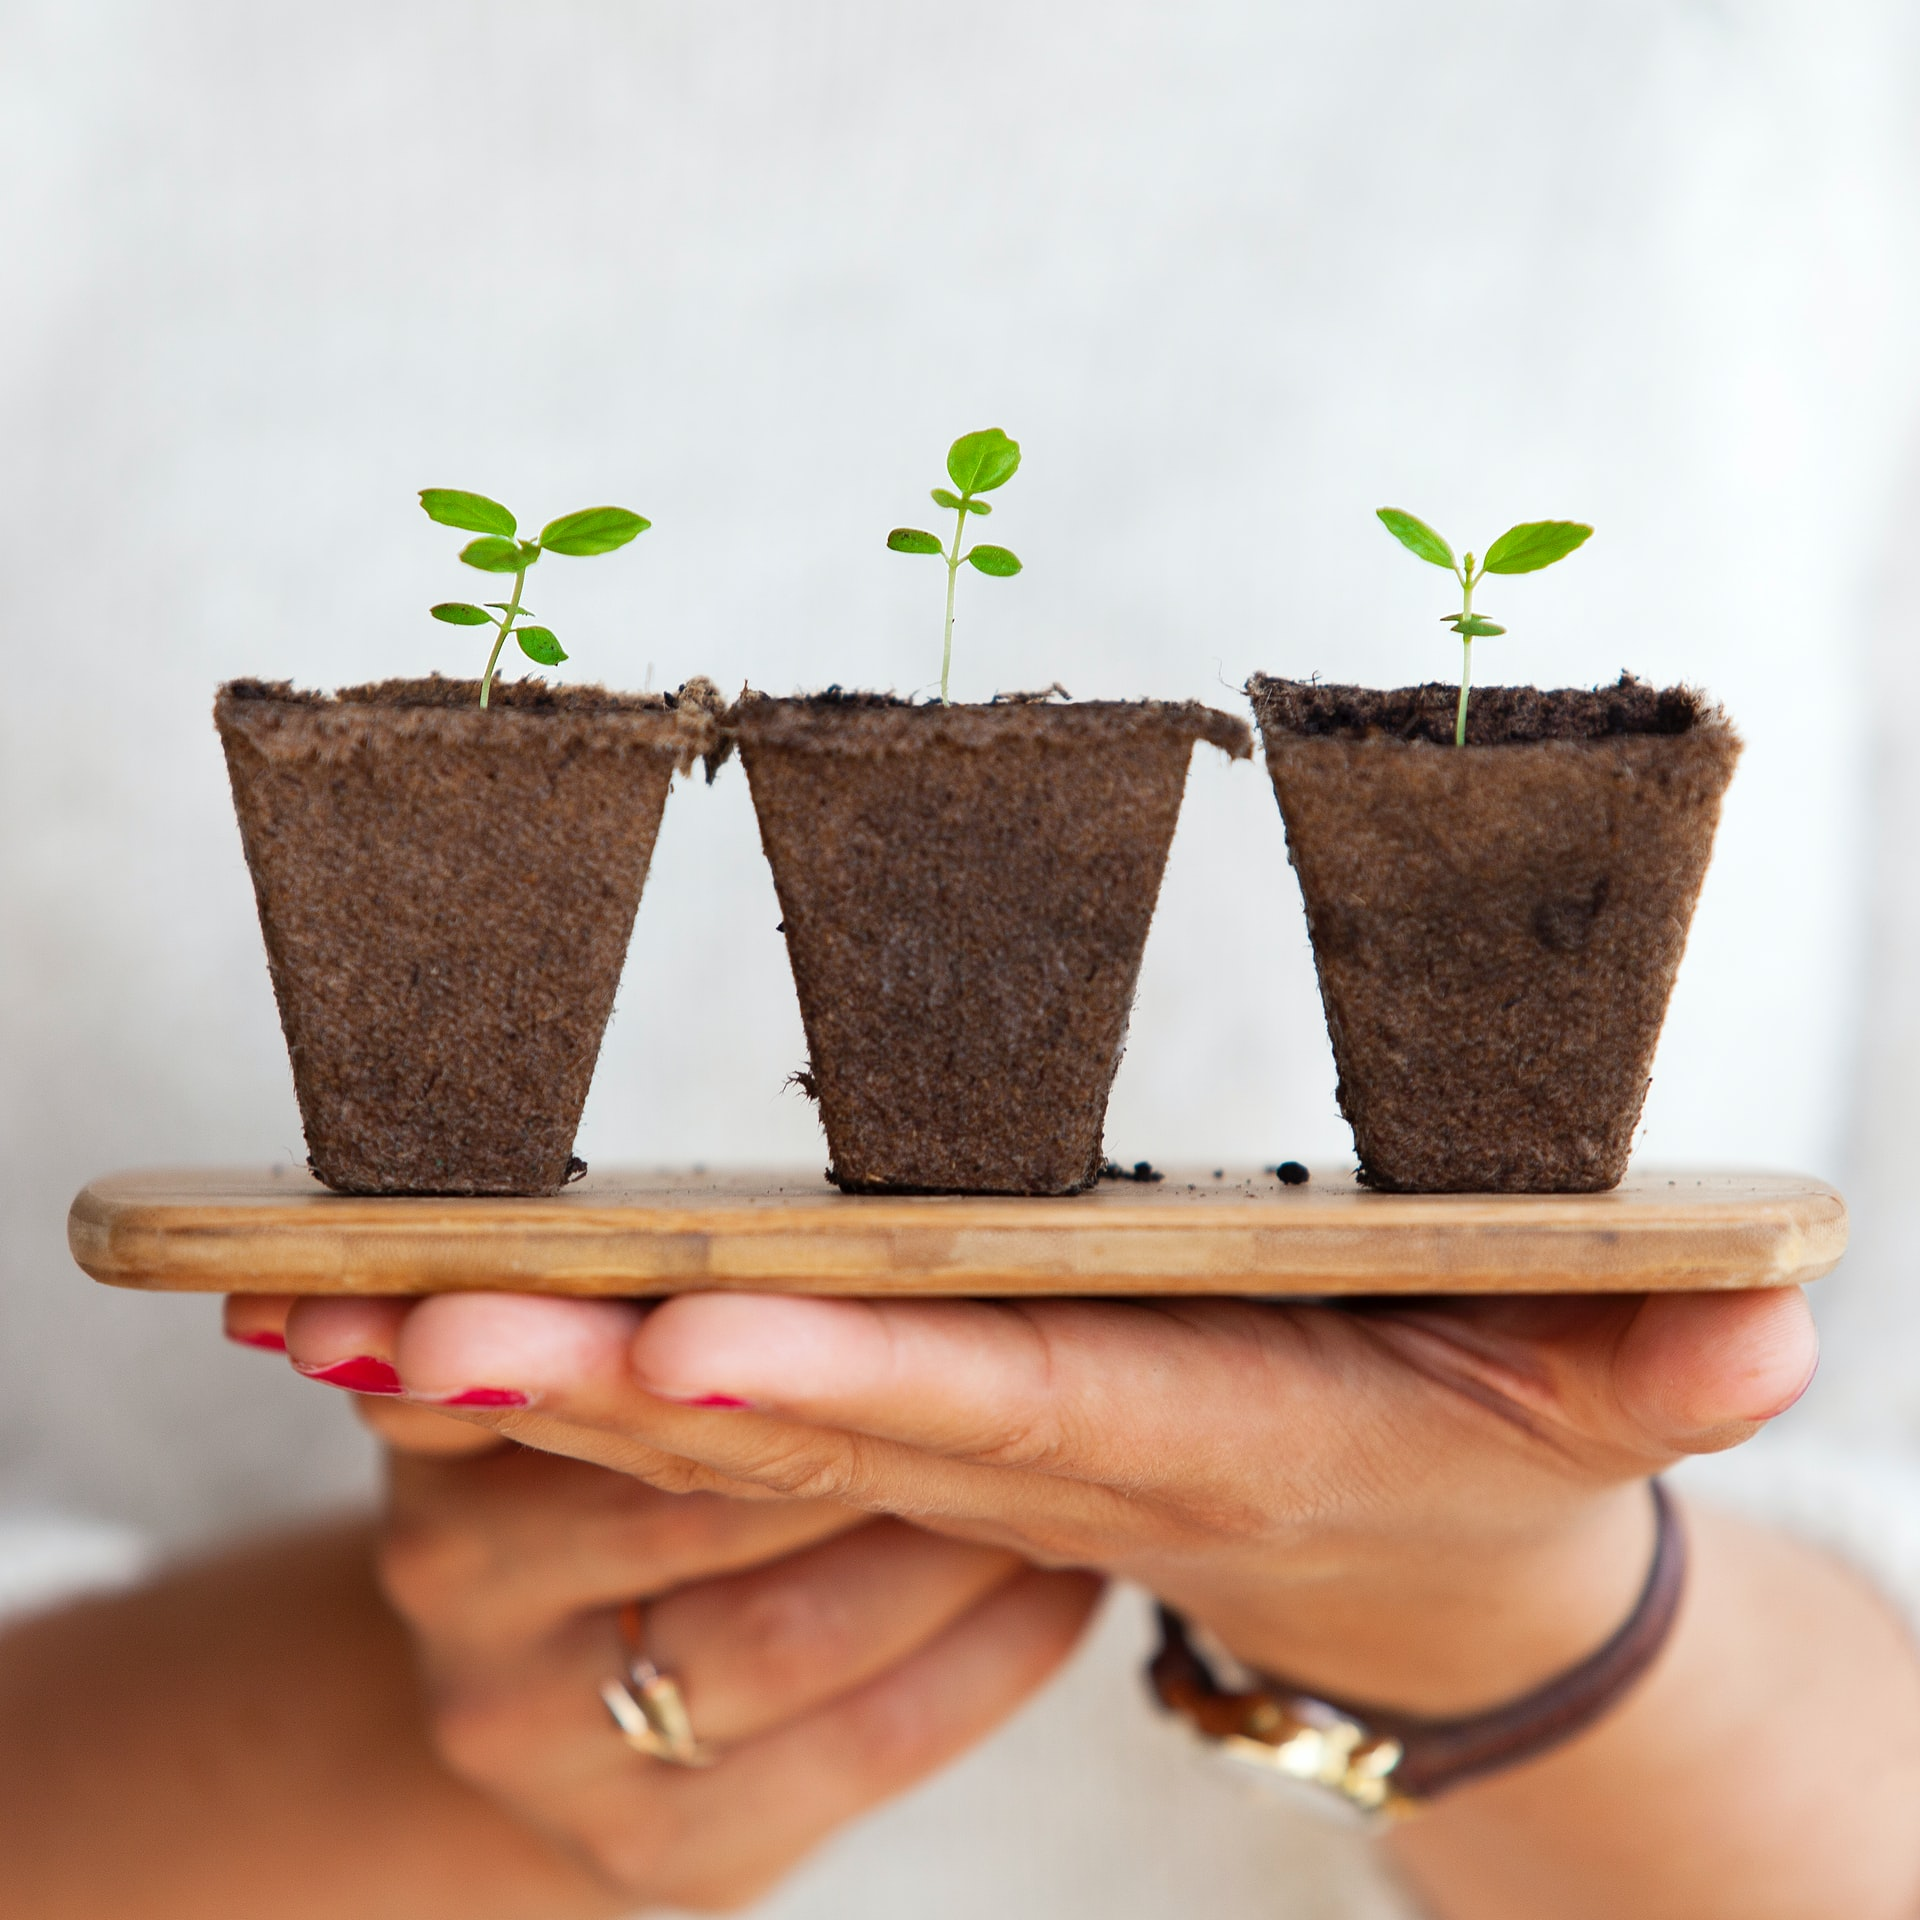 6 Resources You Can Use To Help Grow Your Business